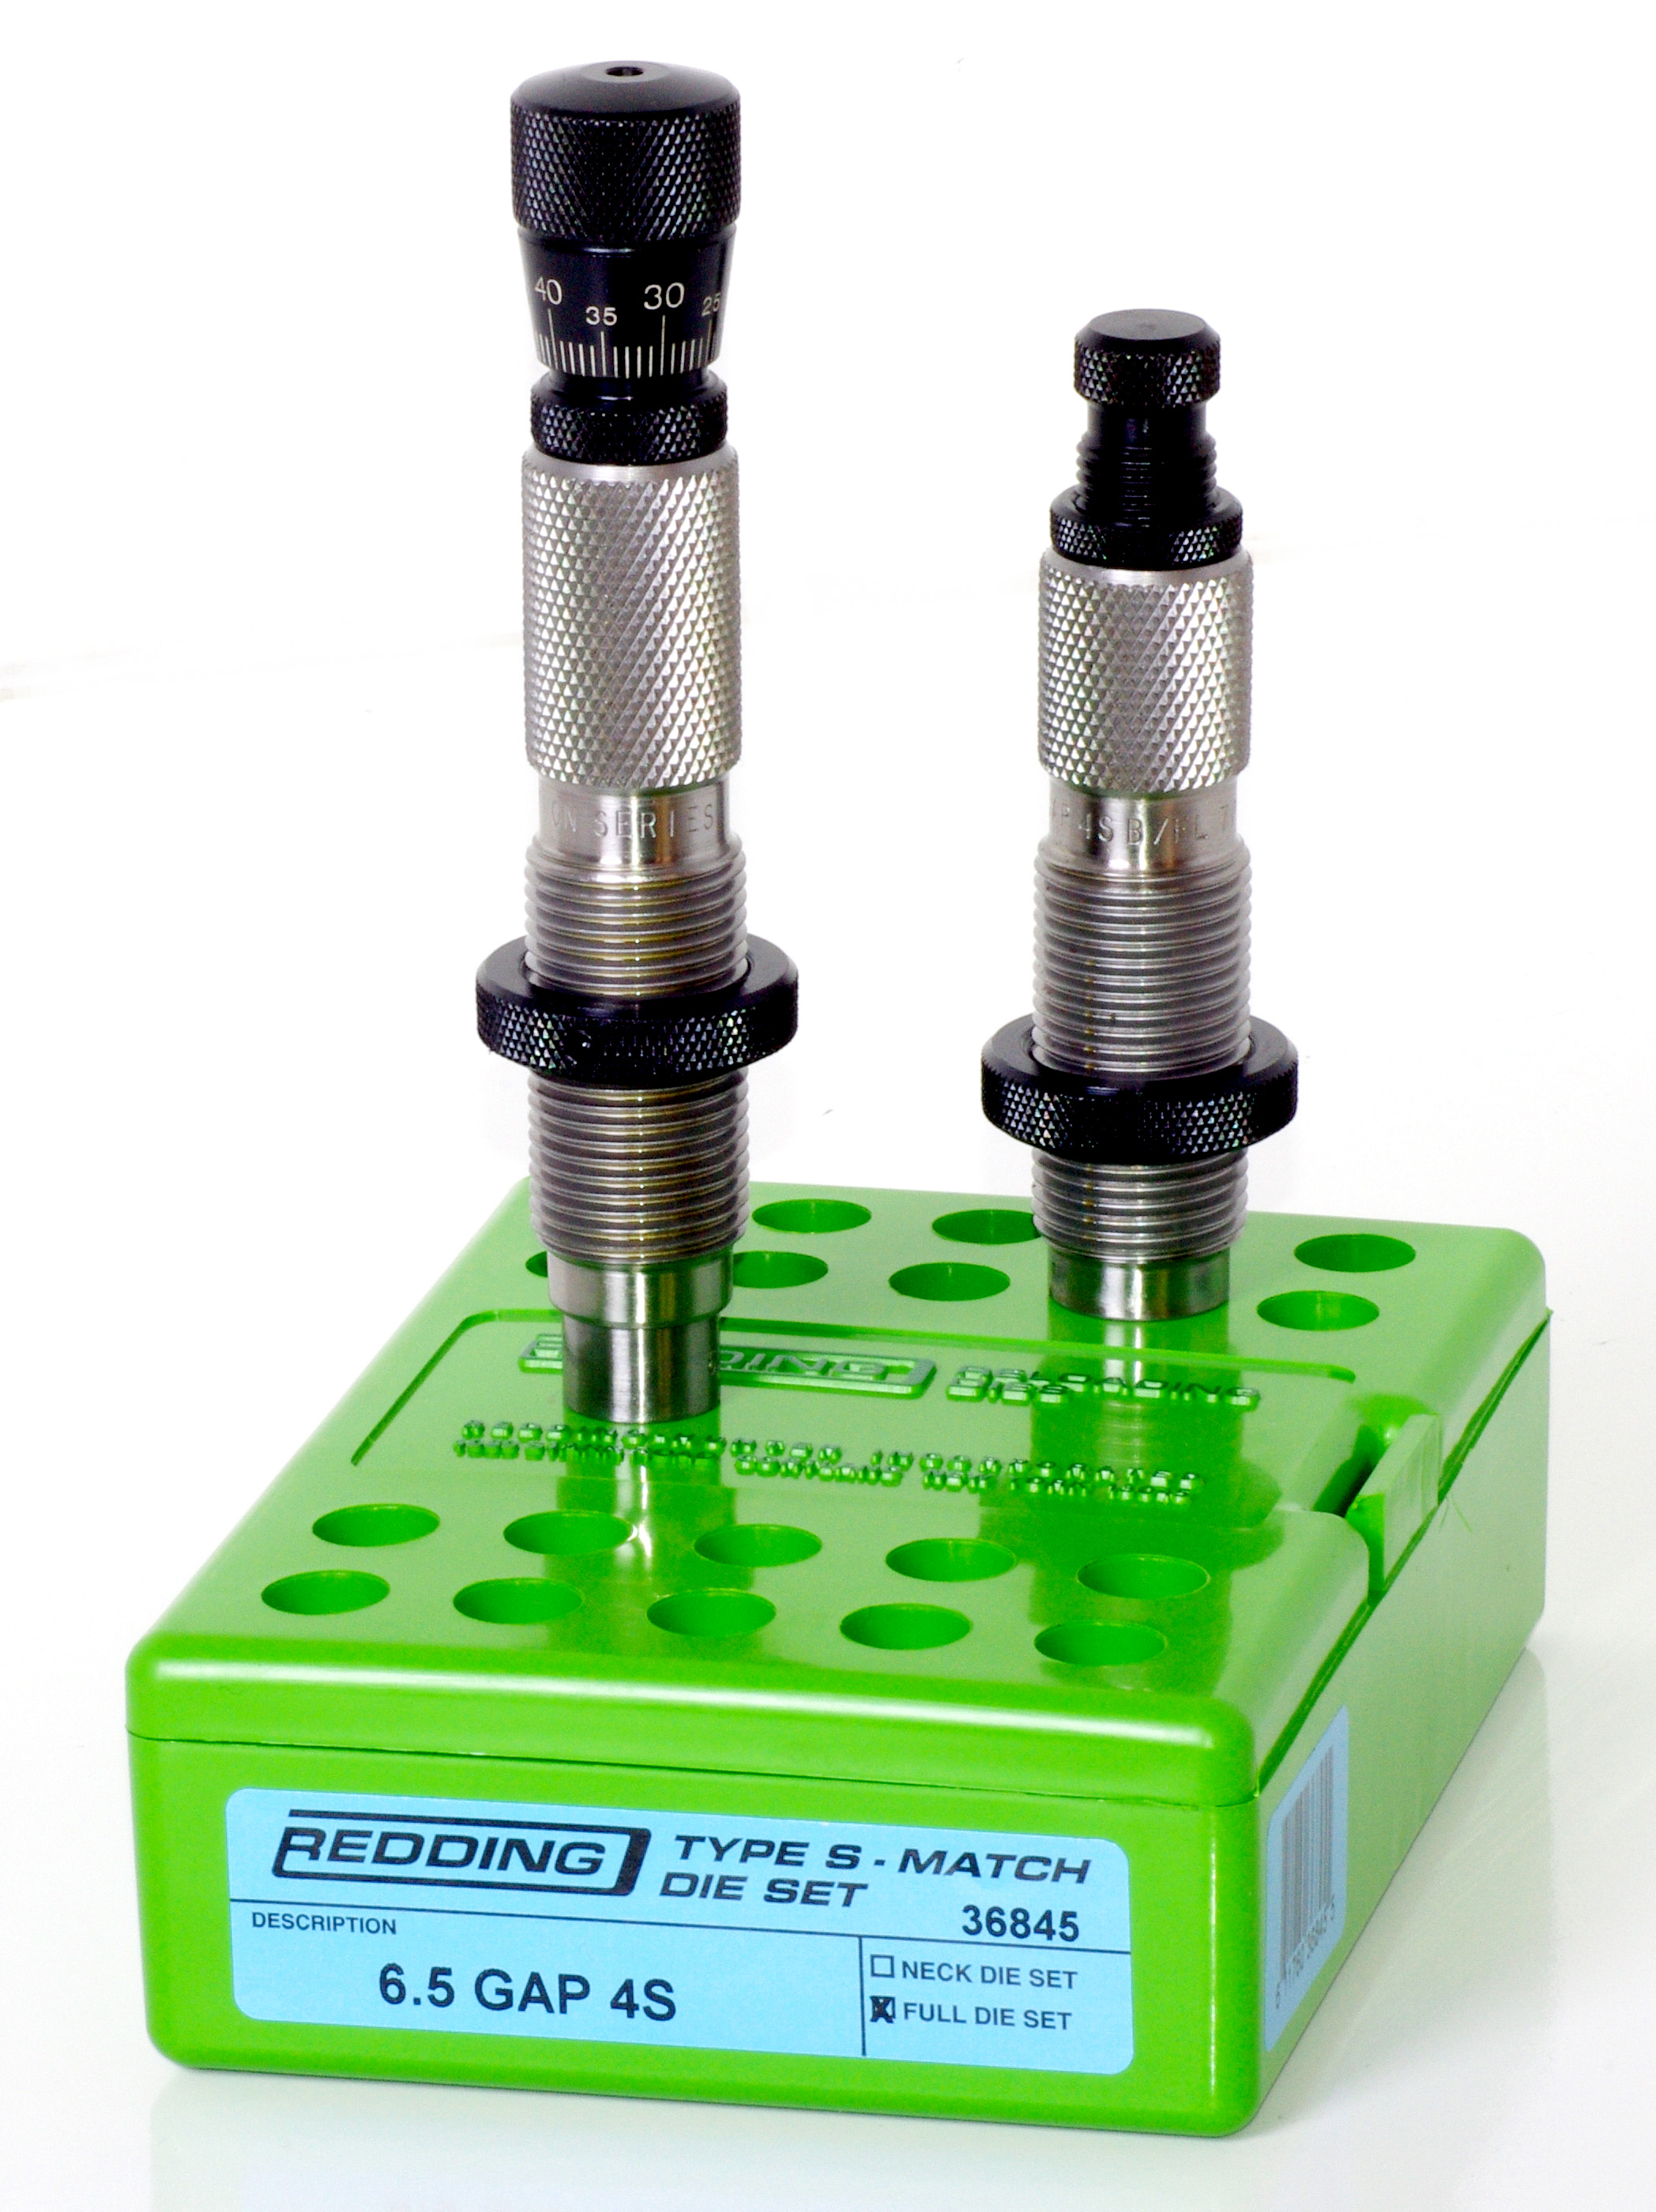 d8d43b425d2 Redding Reloading Equipment Adds Dies for the 6.5 GAP 4S. High Resolution  Image · Press Release - Word ...